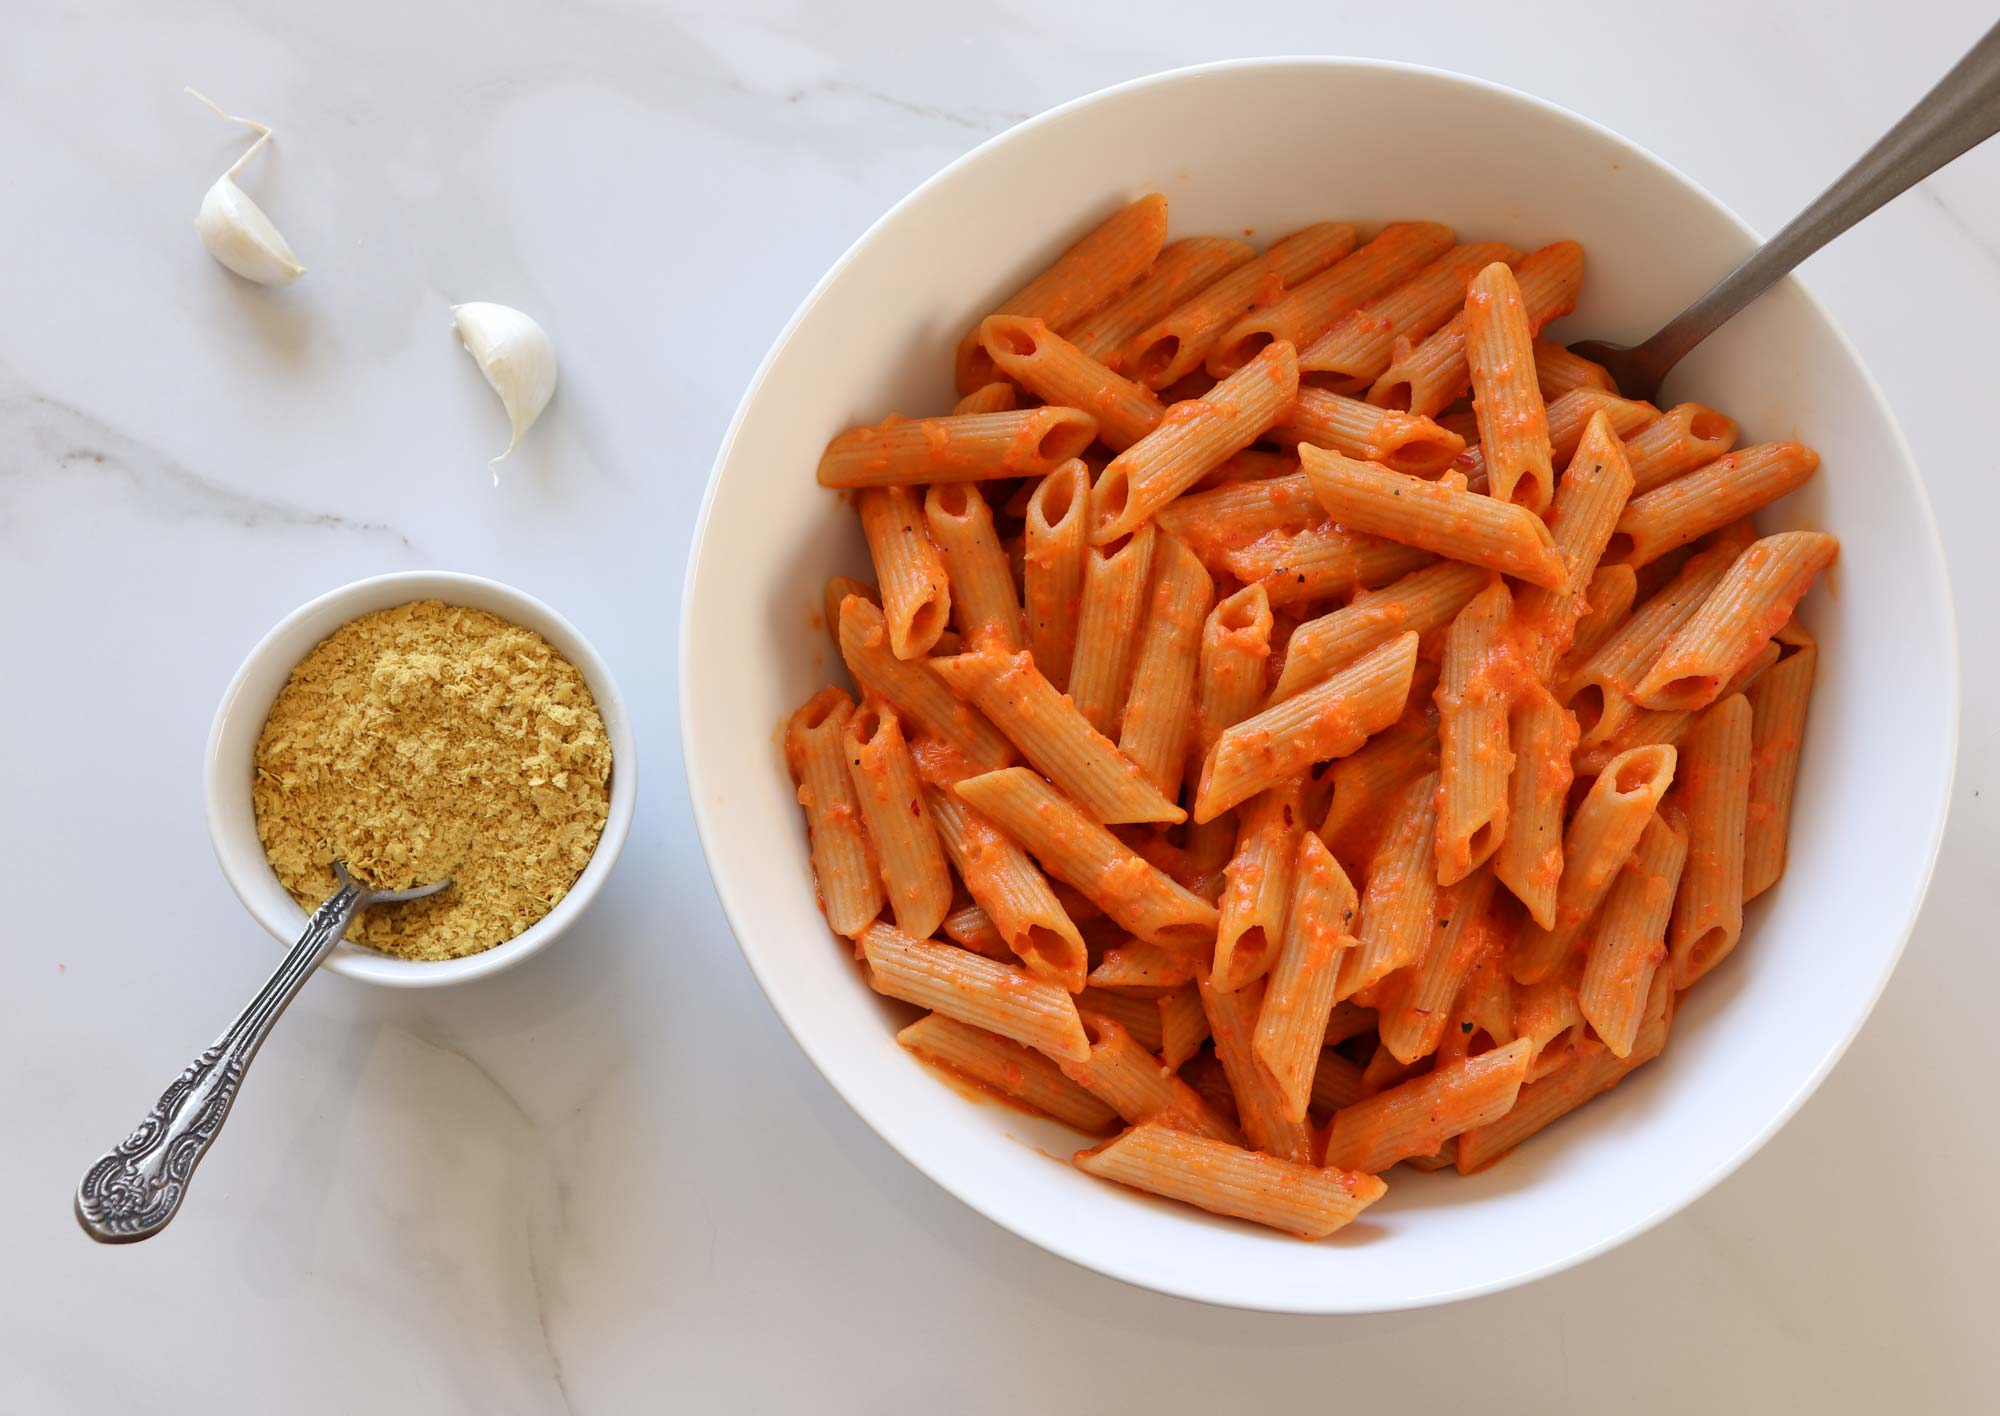 roasted red pepper pasta in bowl